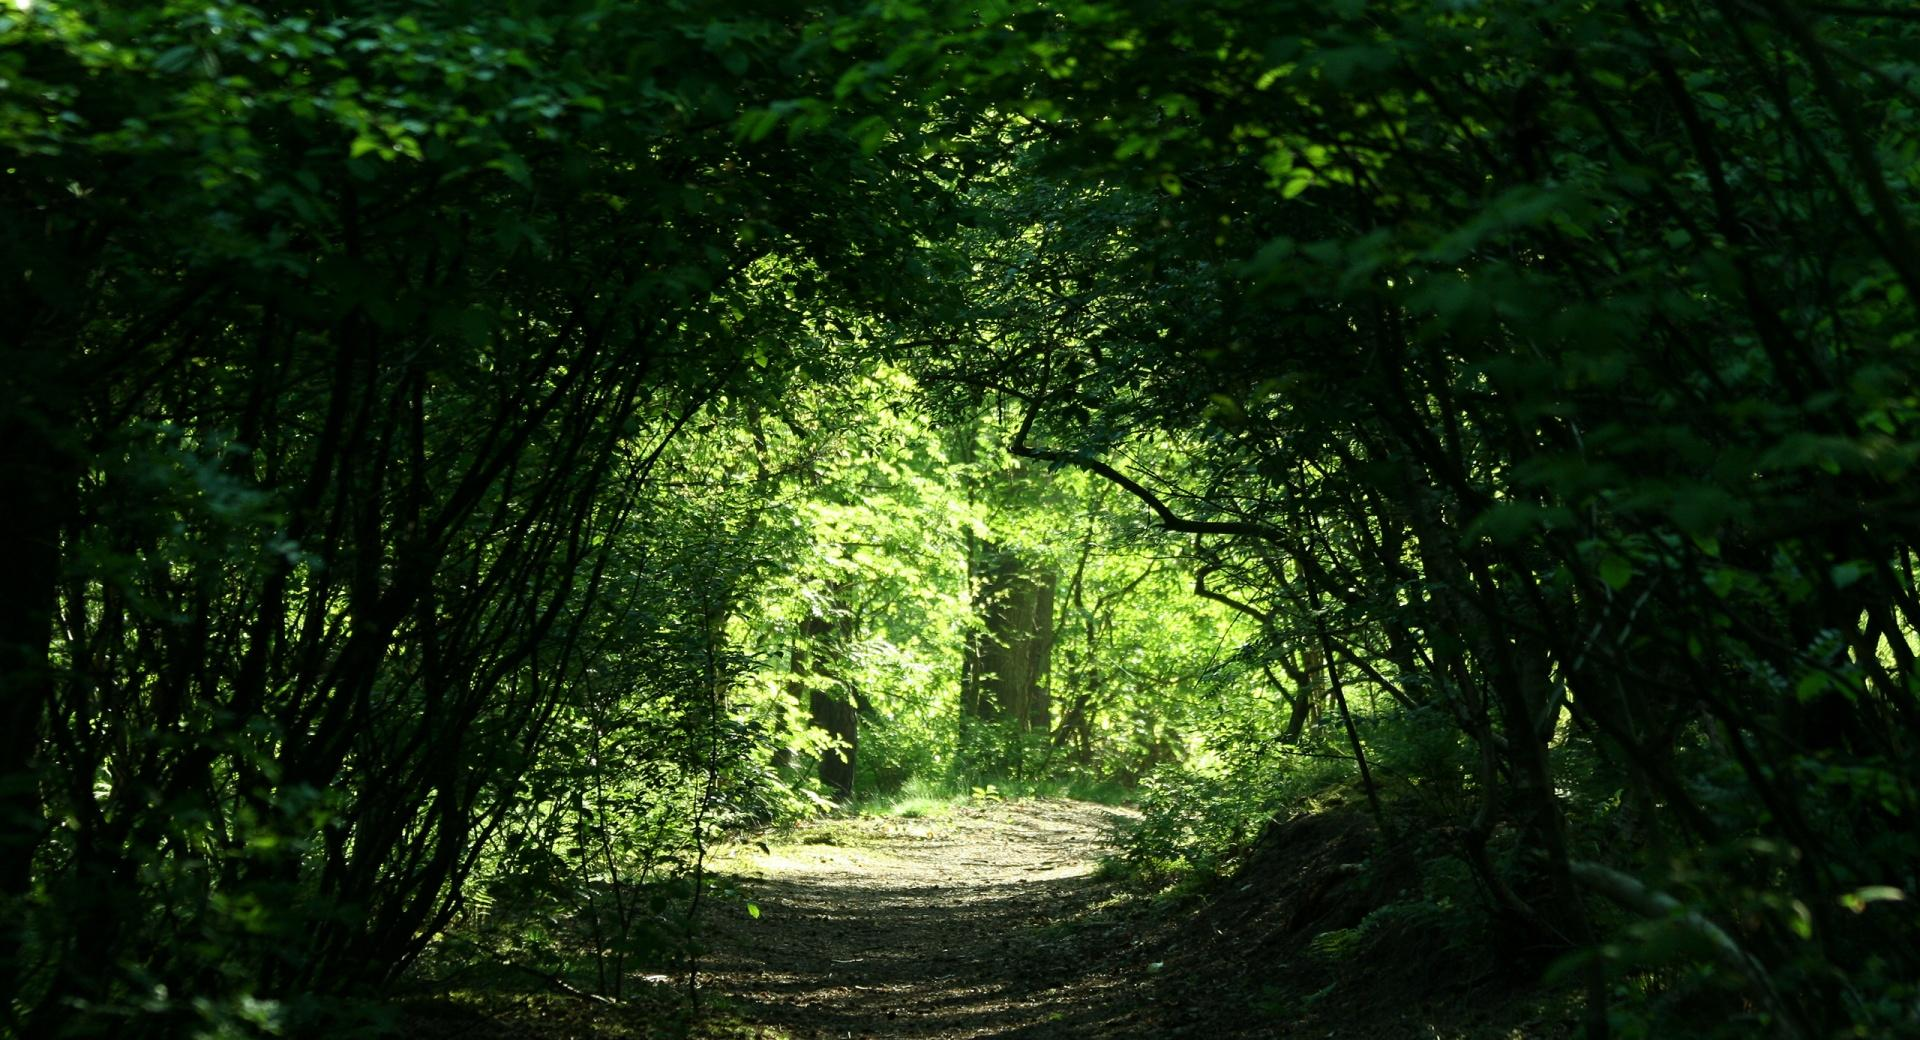 Green Tunnel wallpapers HD quality